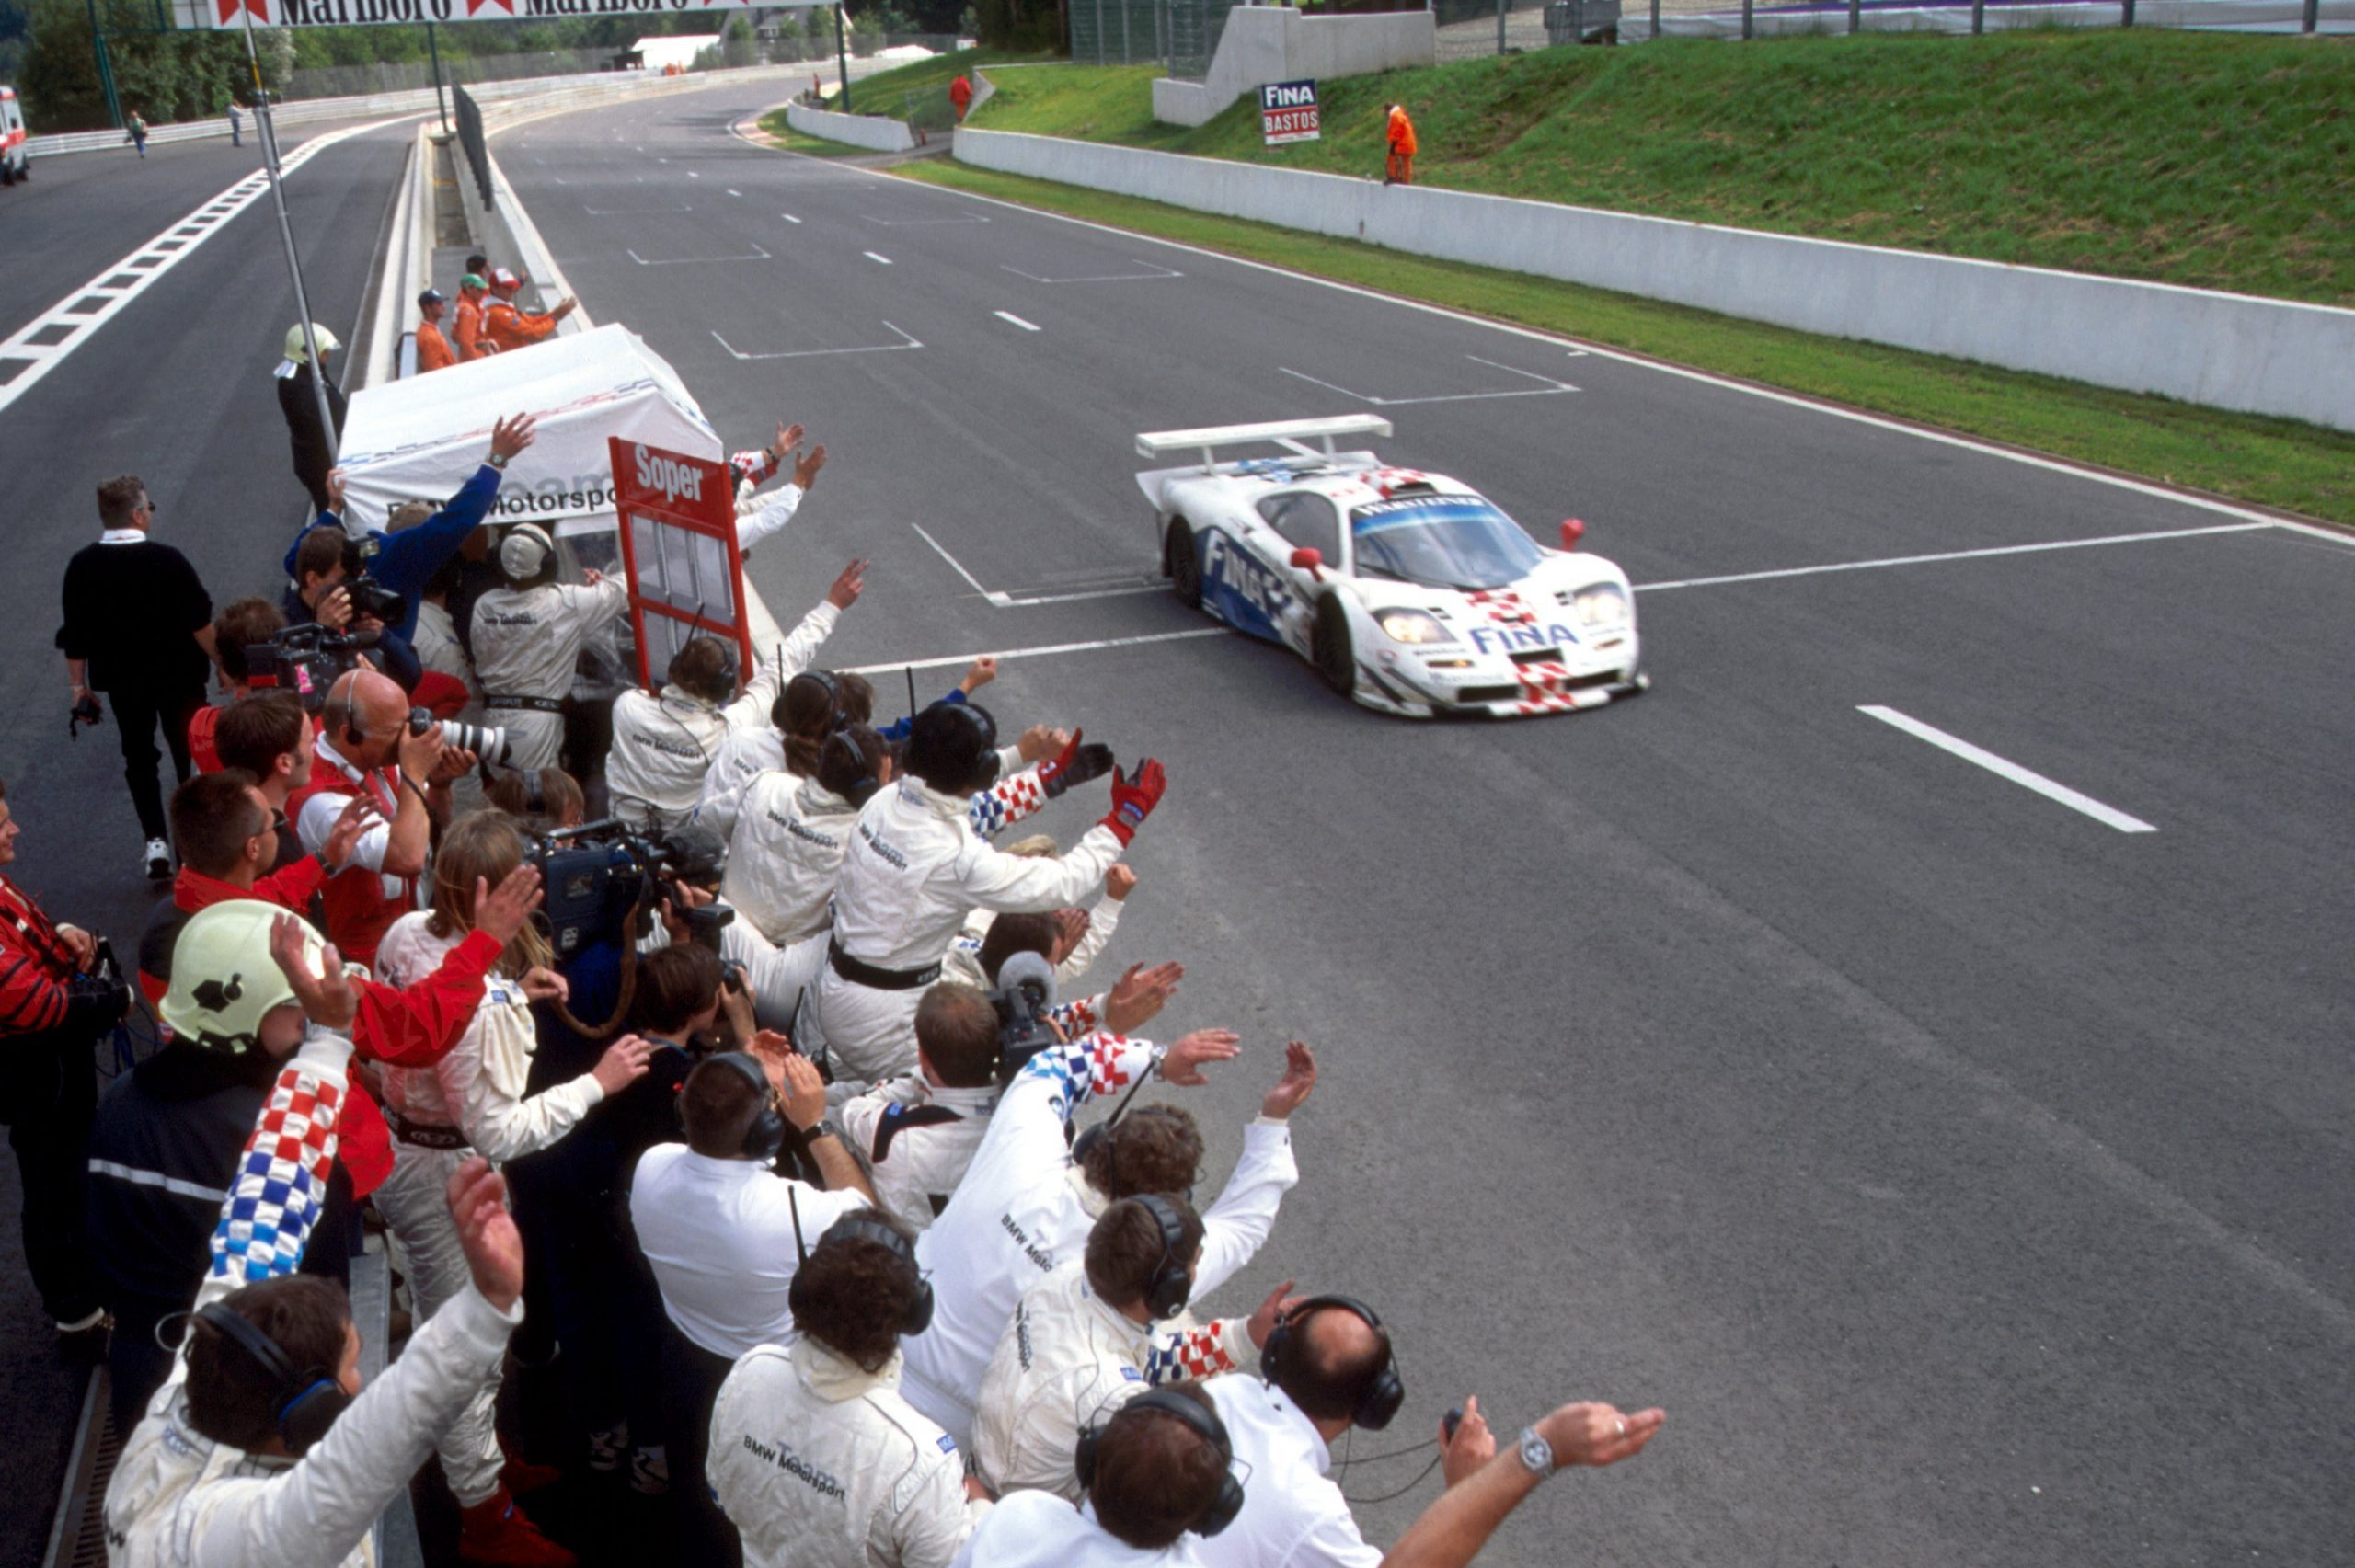 McLaren initially looked to have been the better bet in 1997, winning four of the first five races in the FIA GT championship - only to withdraw at season's end